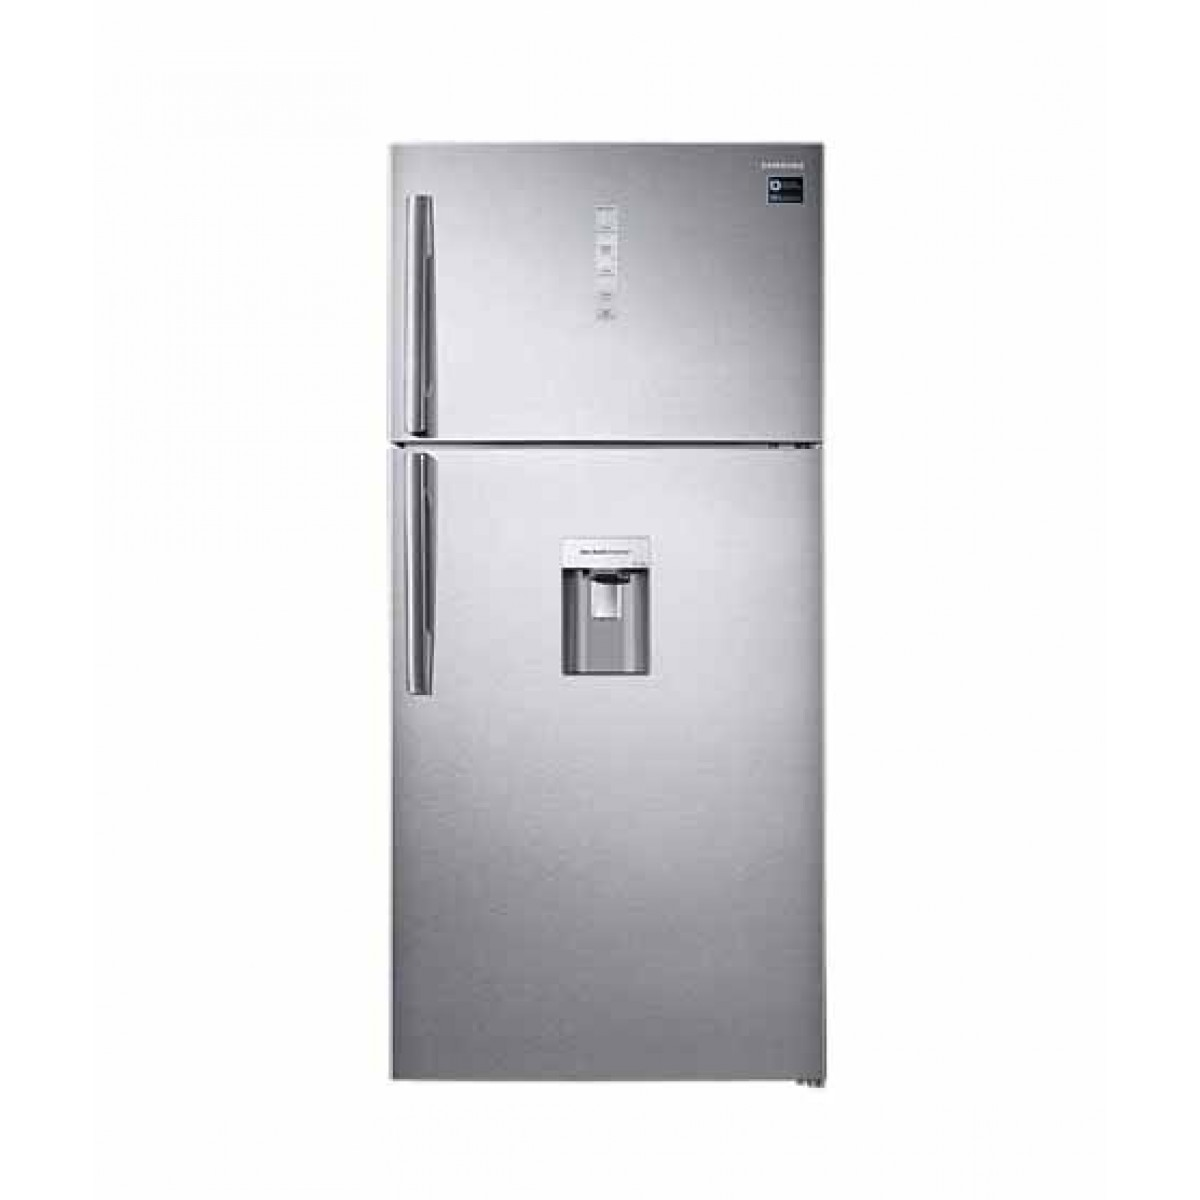 Samsung Freezer-on-Top Refrigerator 23 cu ft (RT62K7110SL)